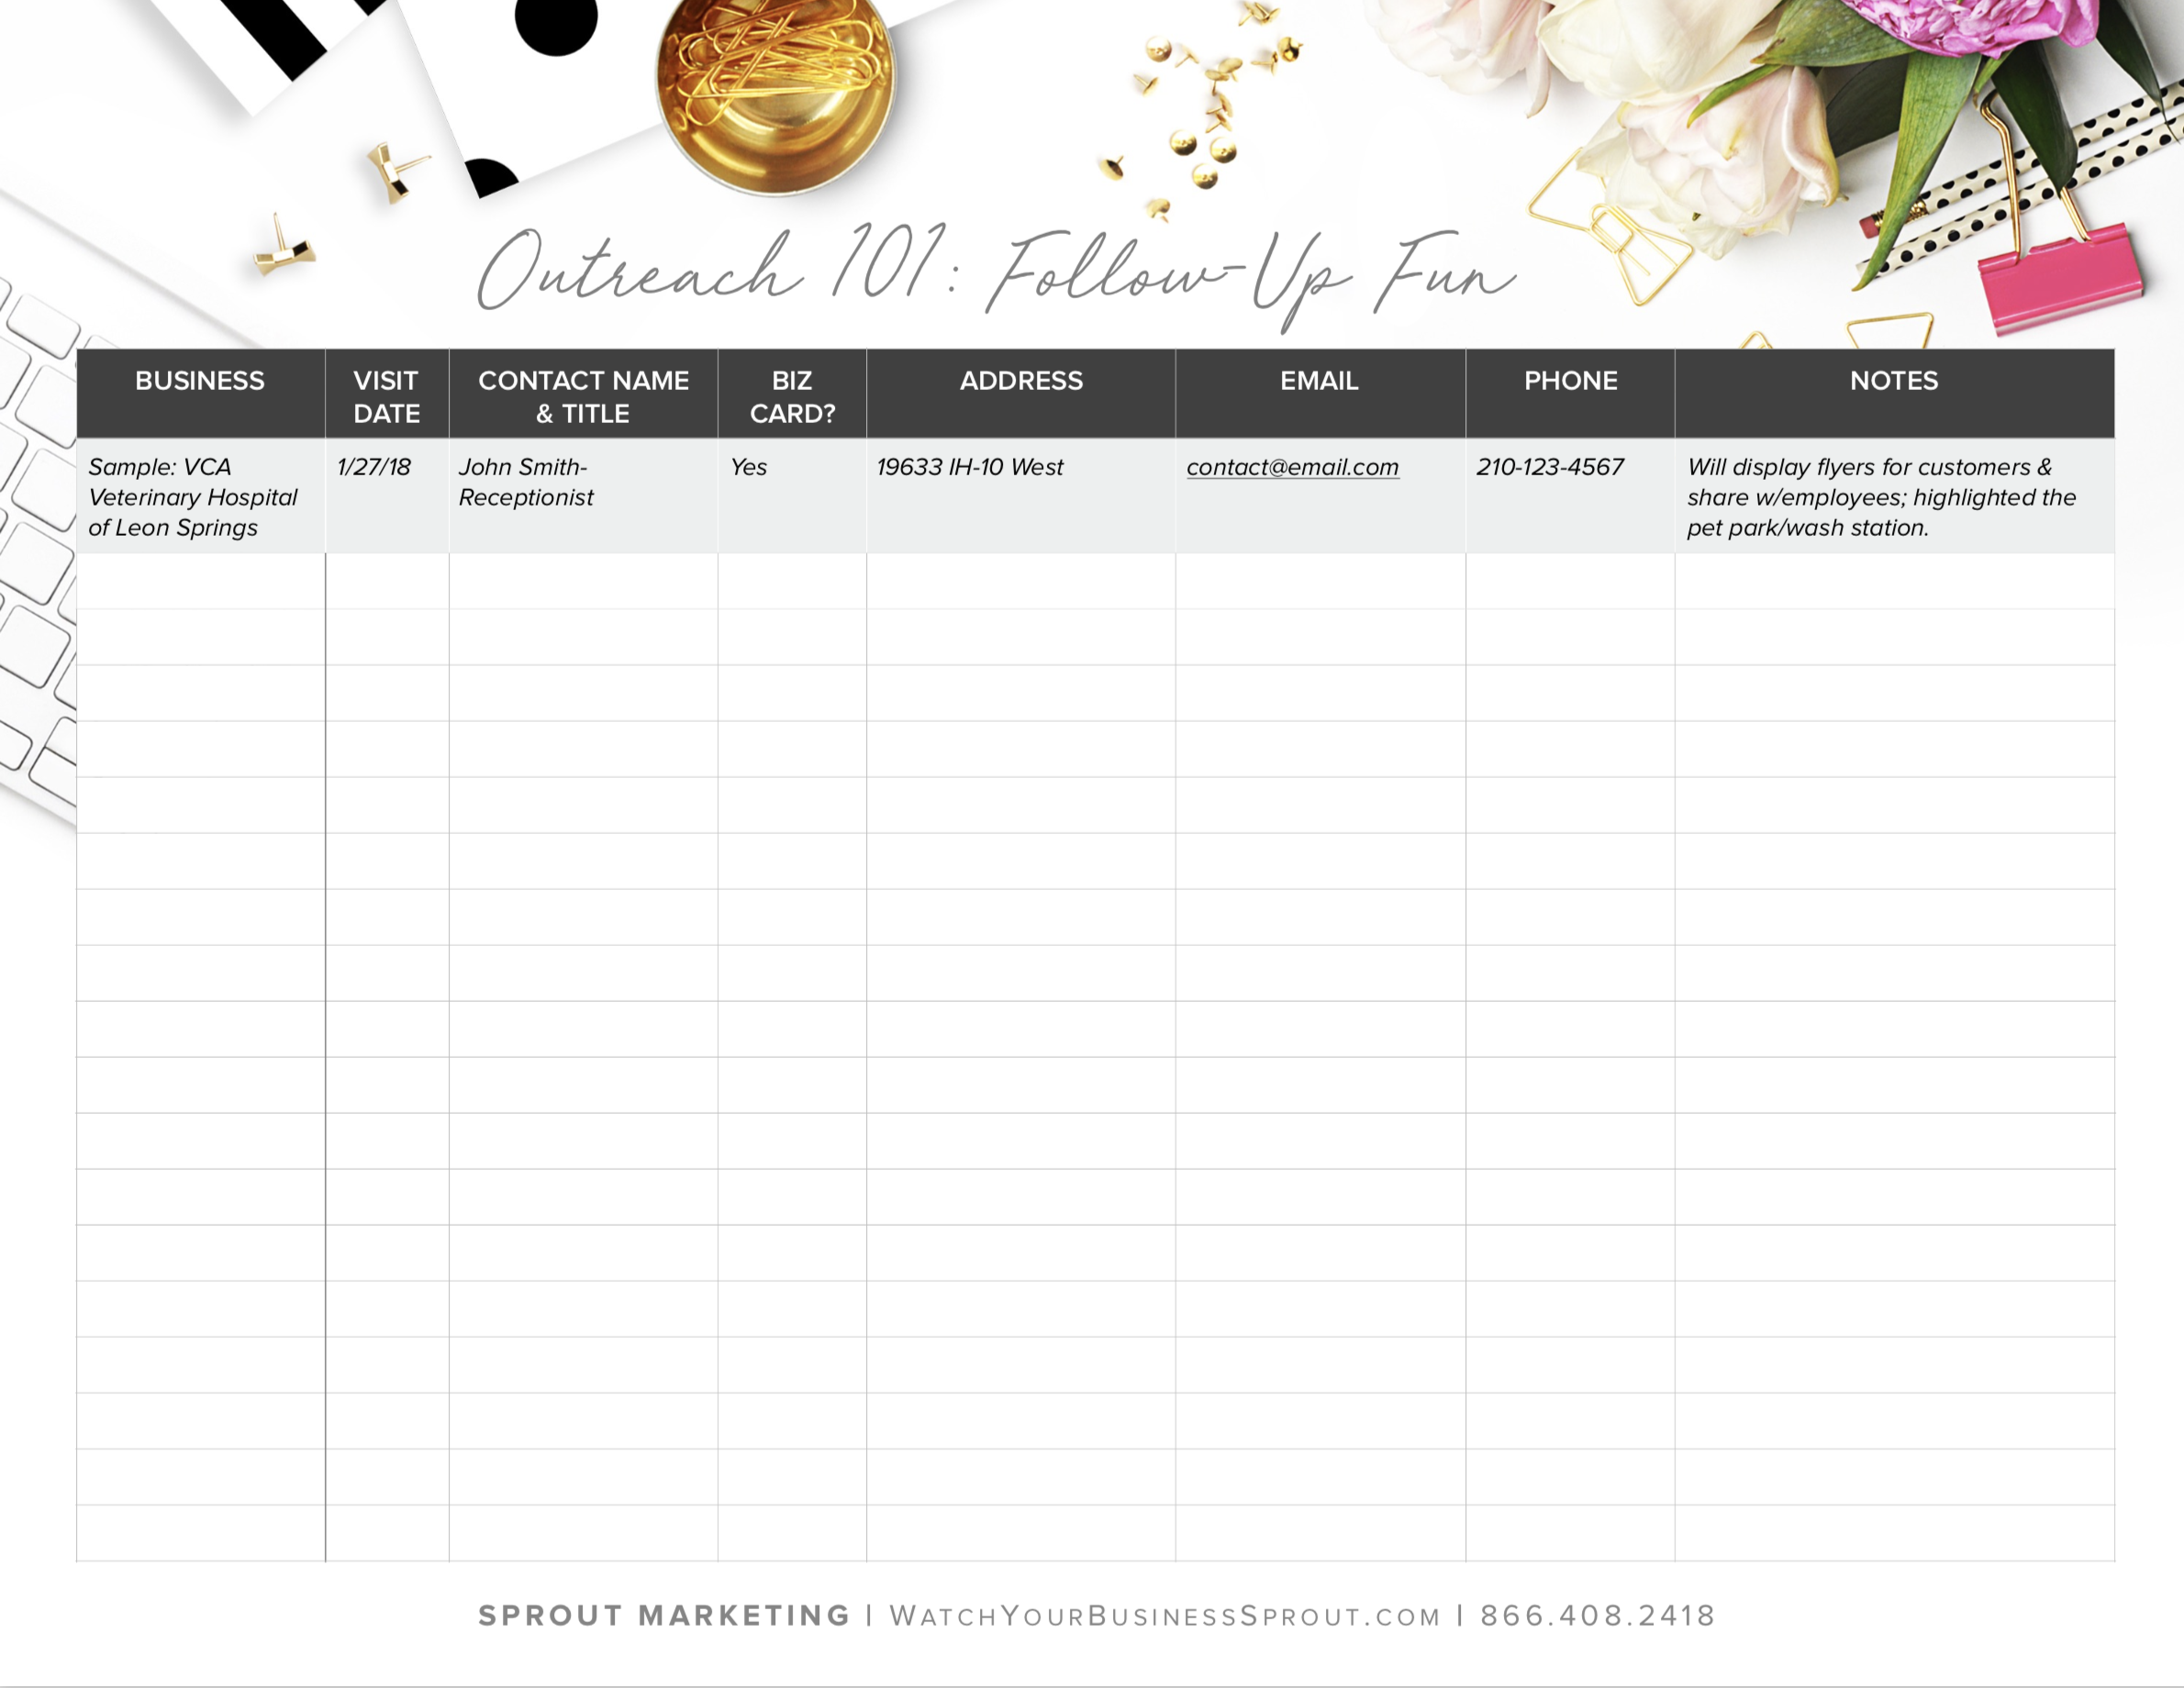 Click on the image to grab a copy of our outreach spreadsheet.